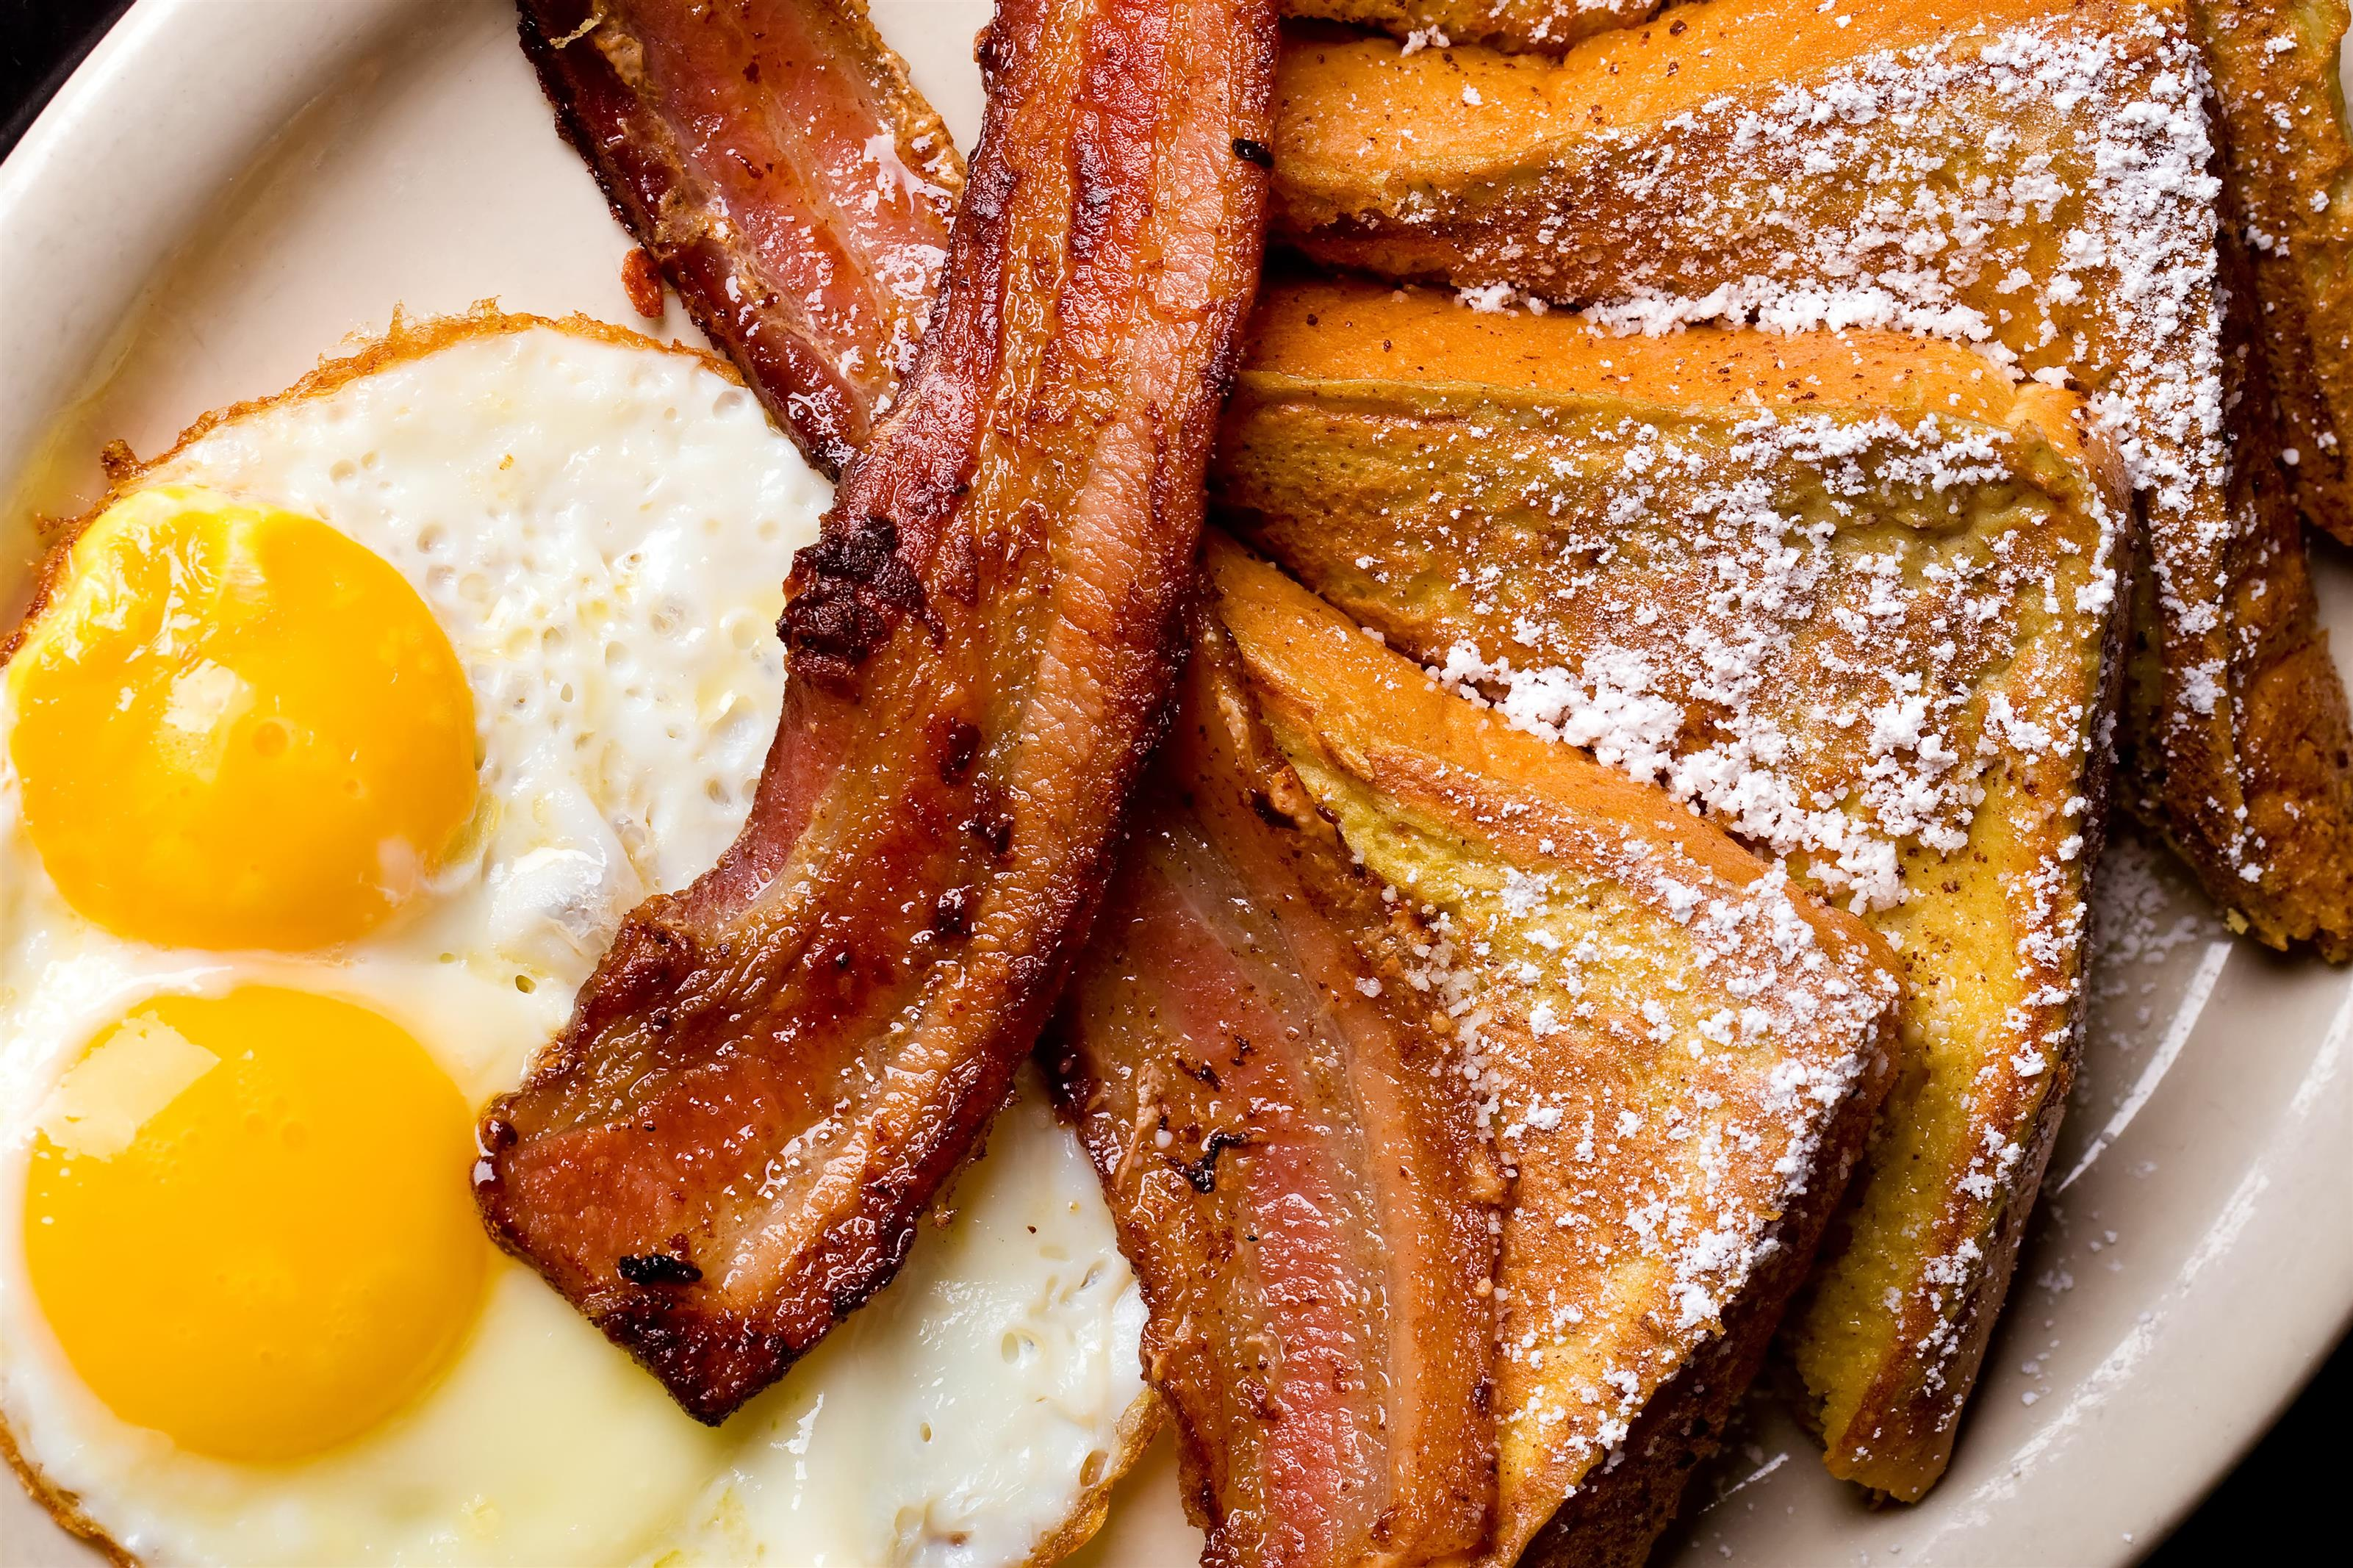 French toast, over easy eggs, bacon